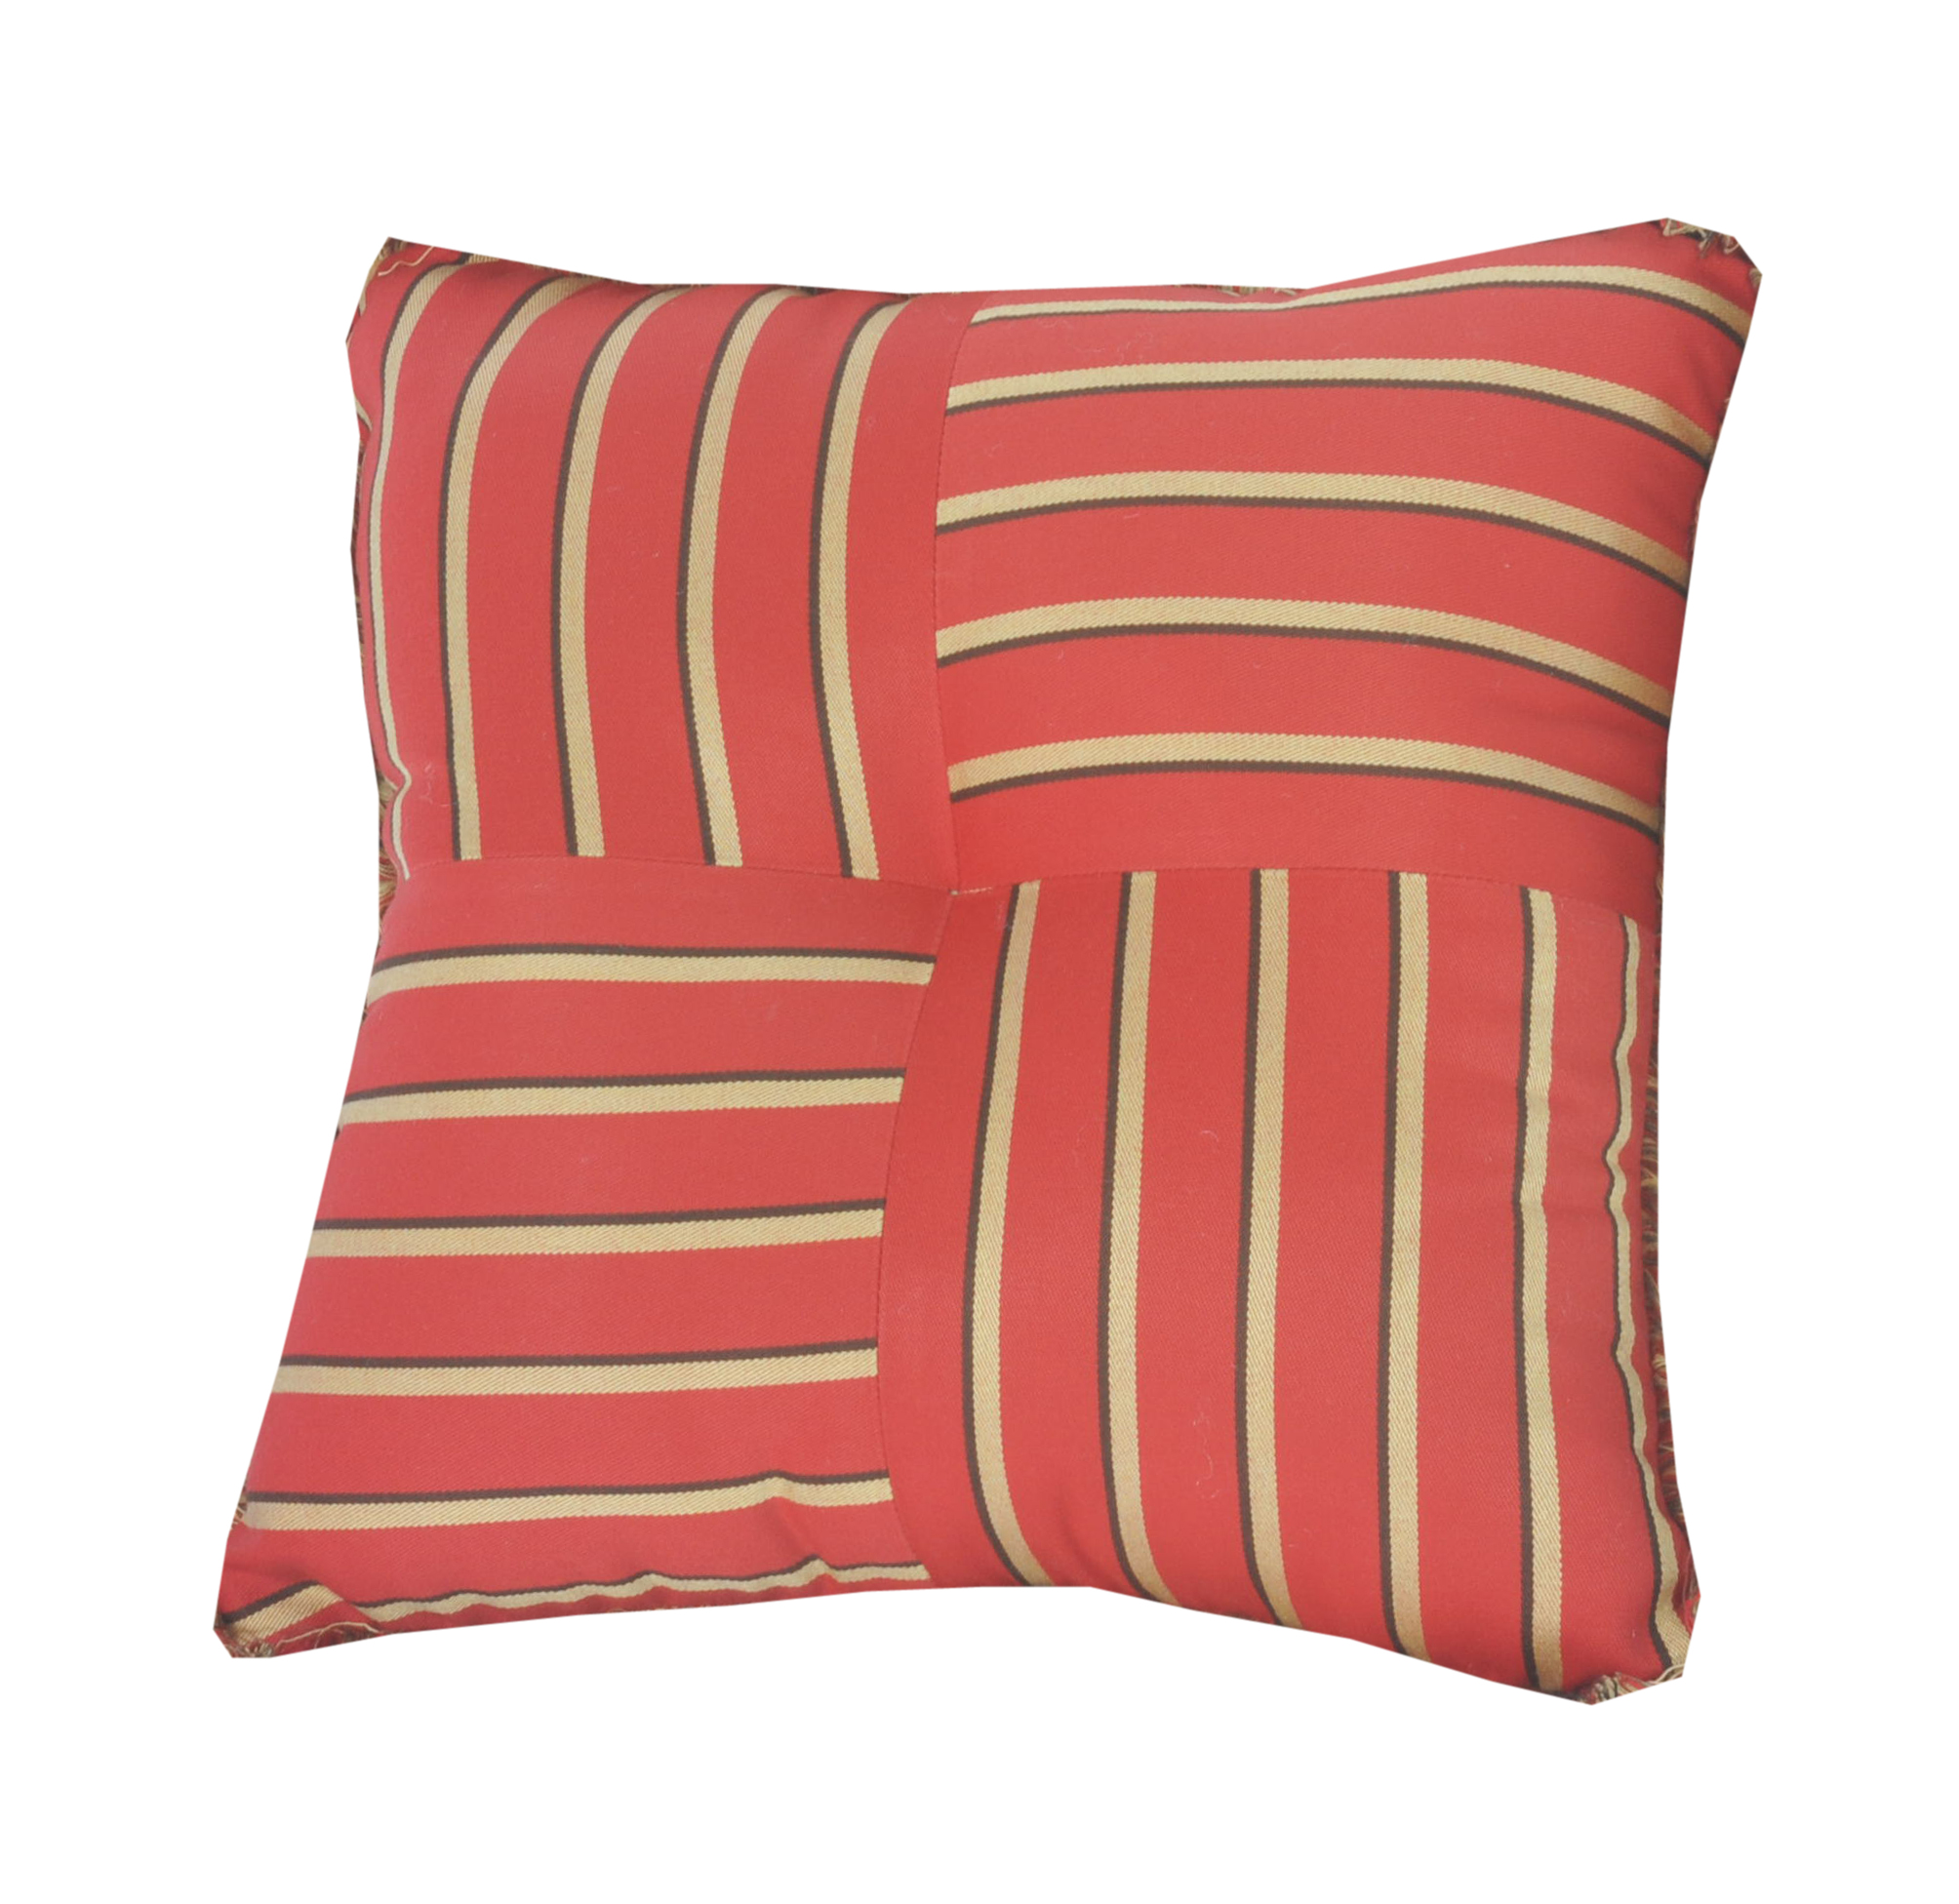 Quilted Throw Pillow Indoor/Outdoor 16